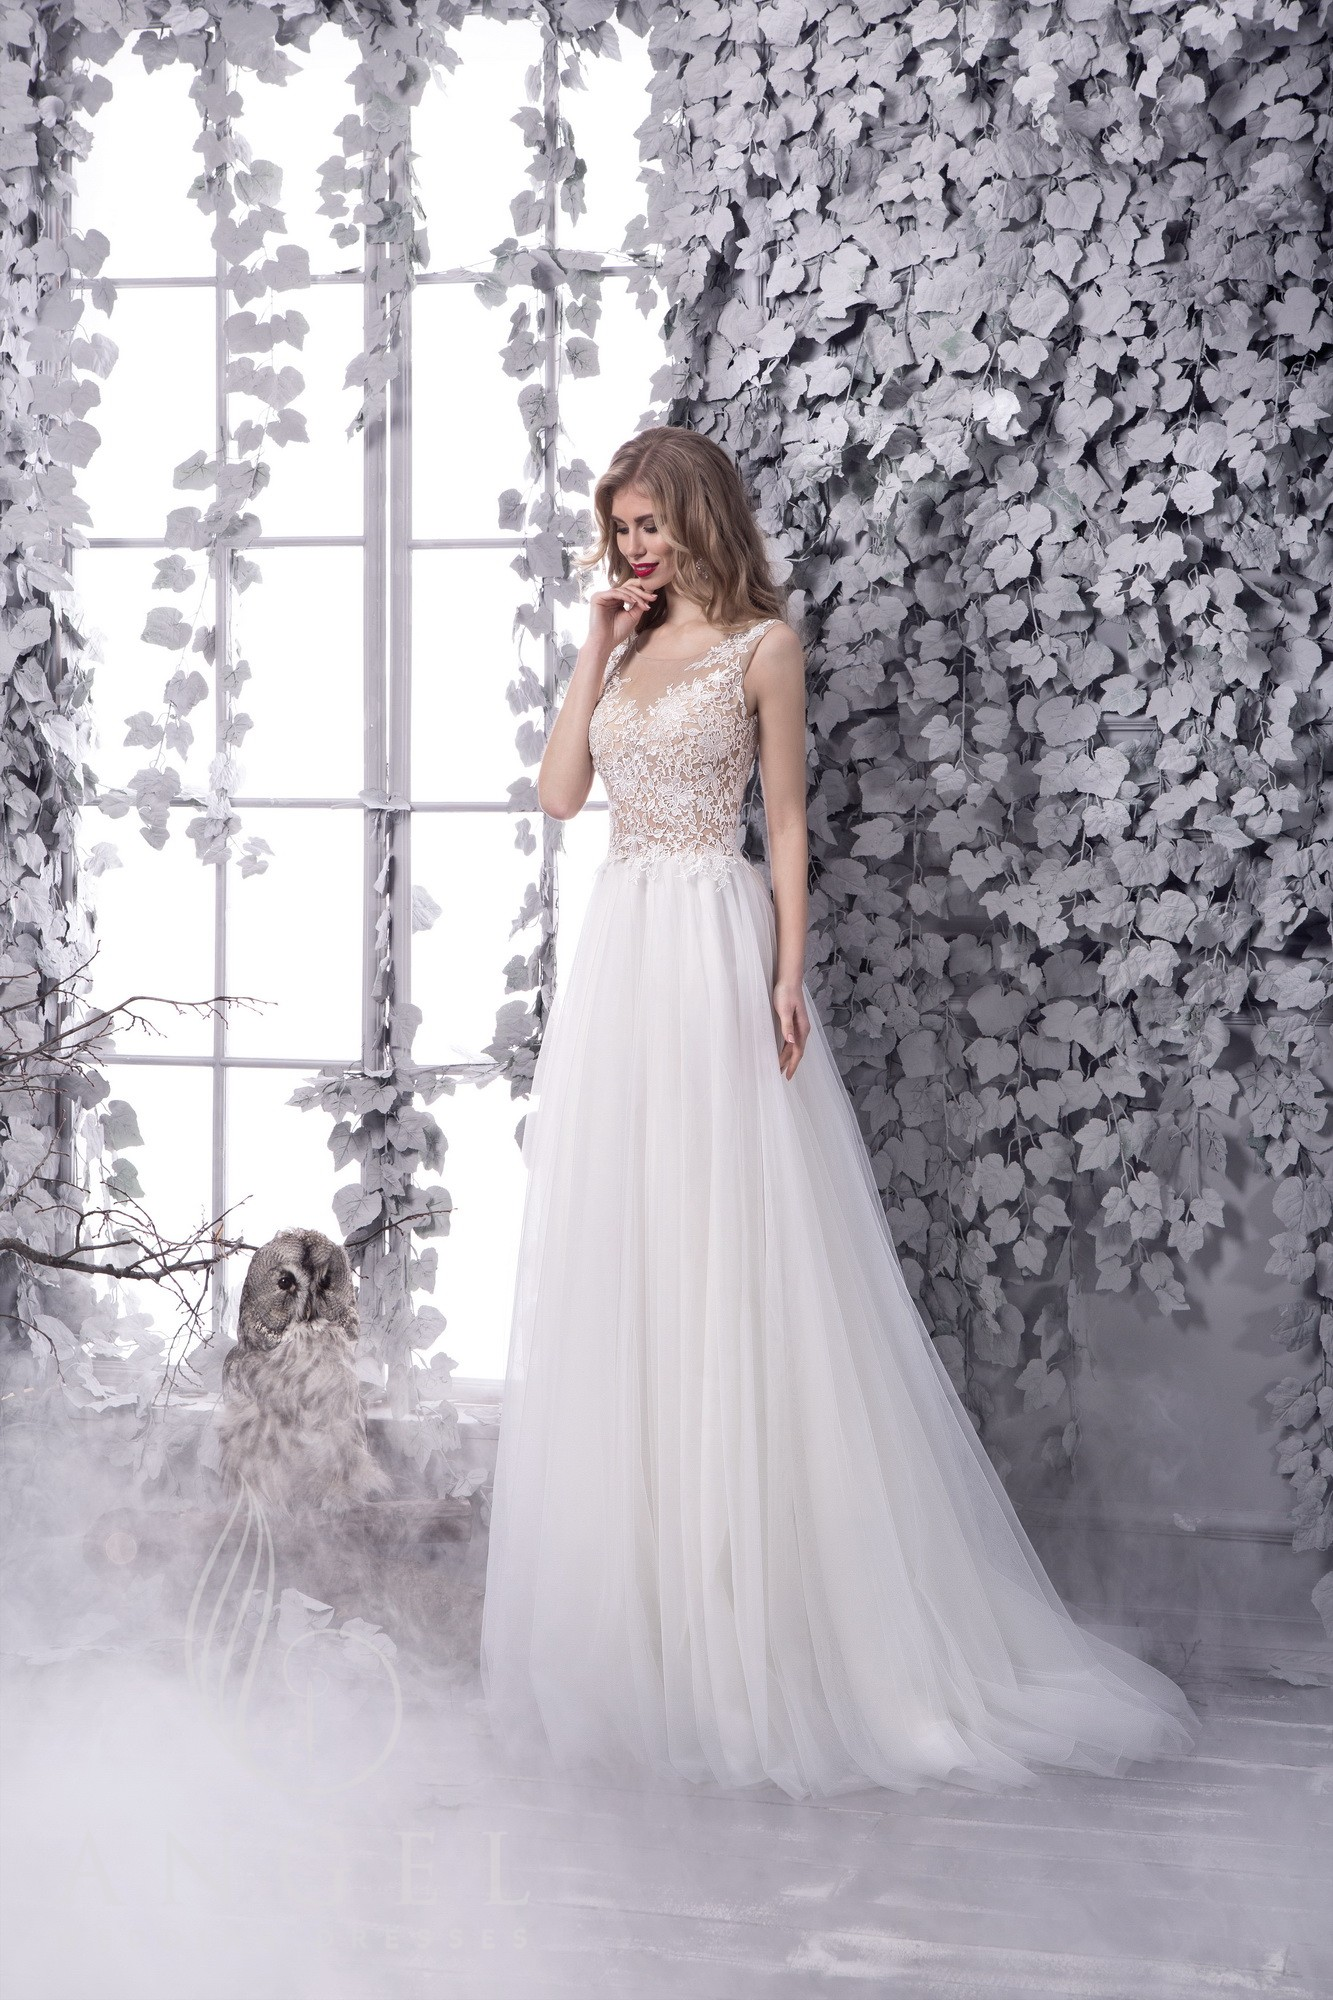 https://angel-novias.com/images/stories/virtuemart/product/PIRRA 1.jpg